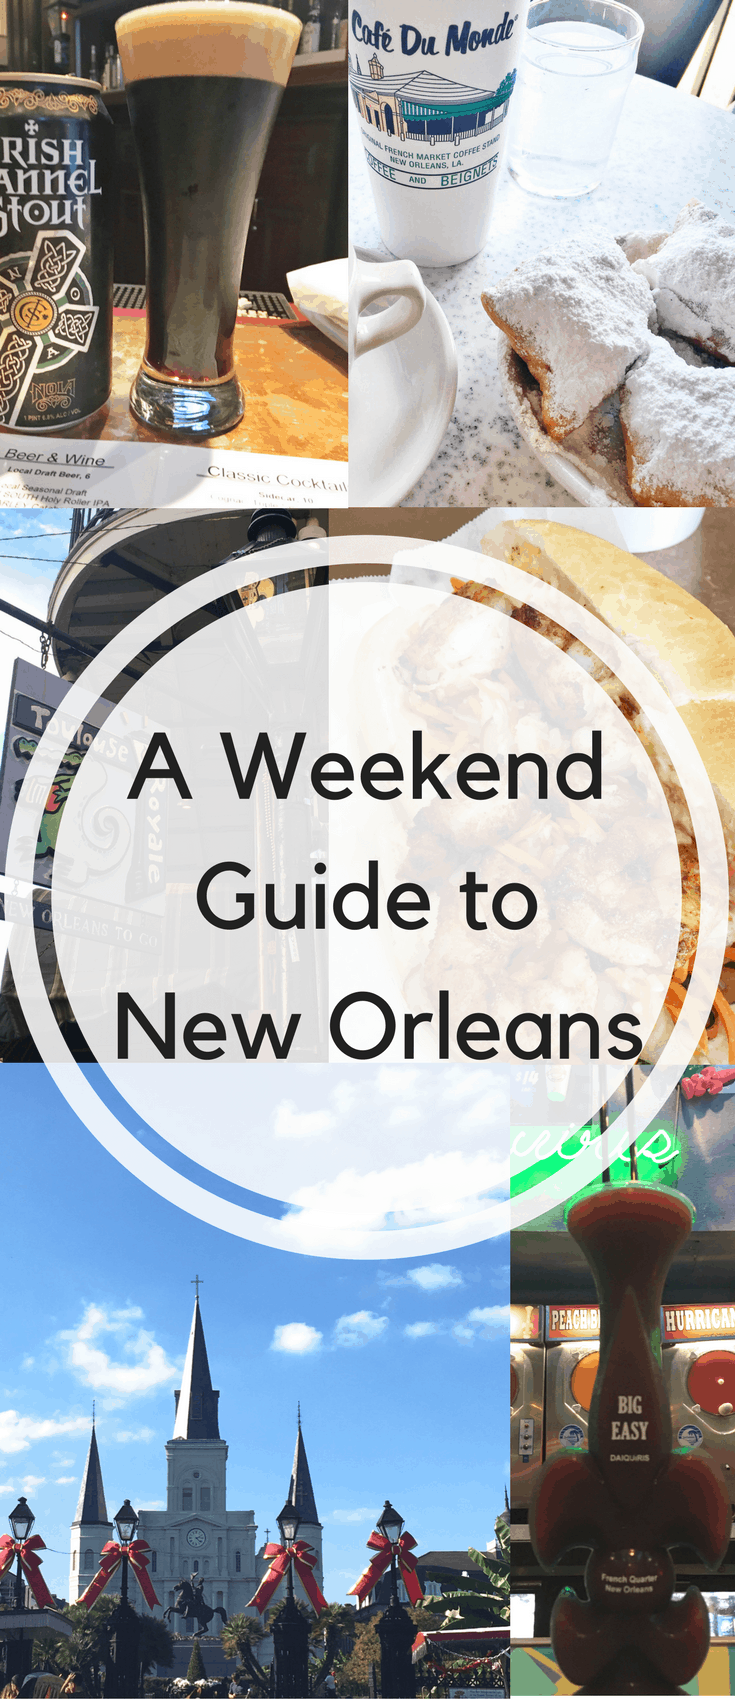 This New Orleans Weekend Travel Guide includes a 3 day itinerary of many budget-friendly things to do and tips to get around the French Quarter and more. Between haunted houses, voodoo and the Mardi Gras museum there is an entire bucket list of things to do in New Orleans.